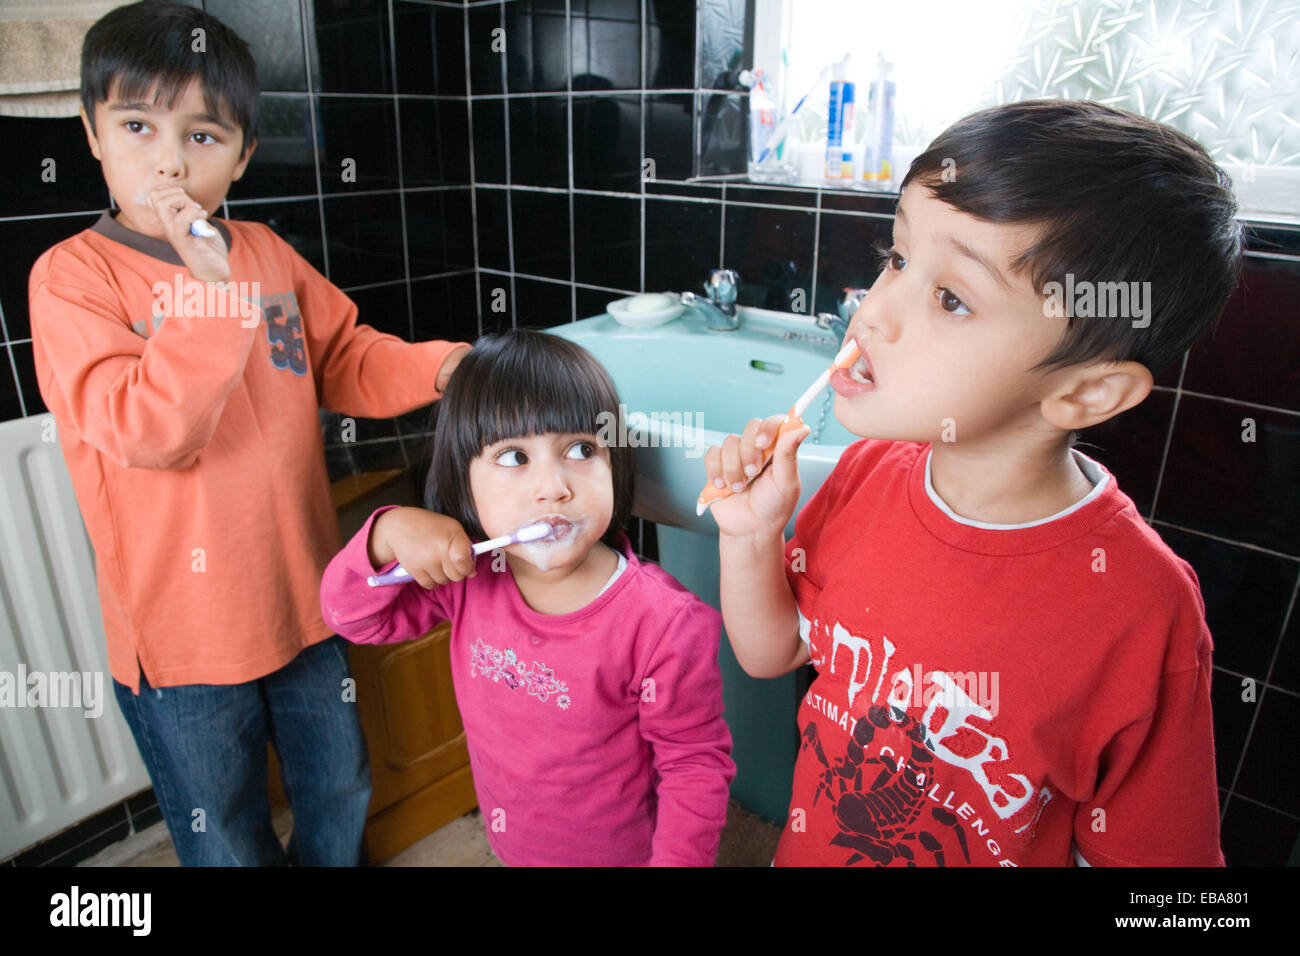 Brothers and sister brushing their teeth together, - Stock Image